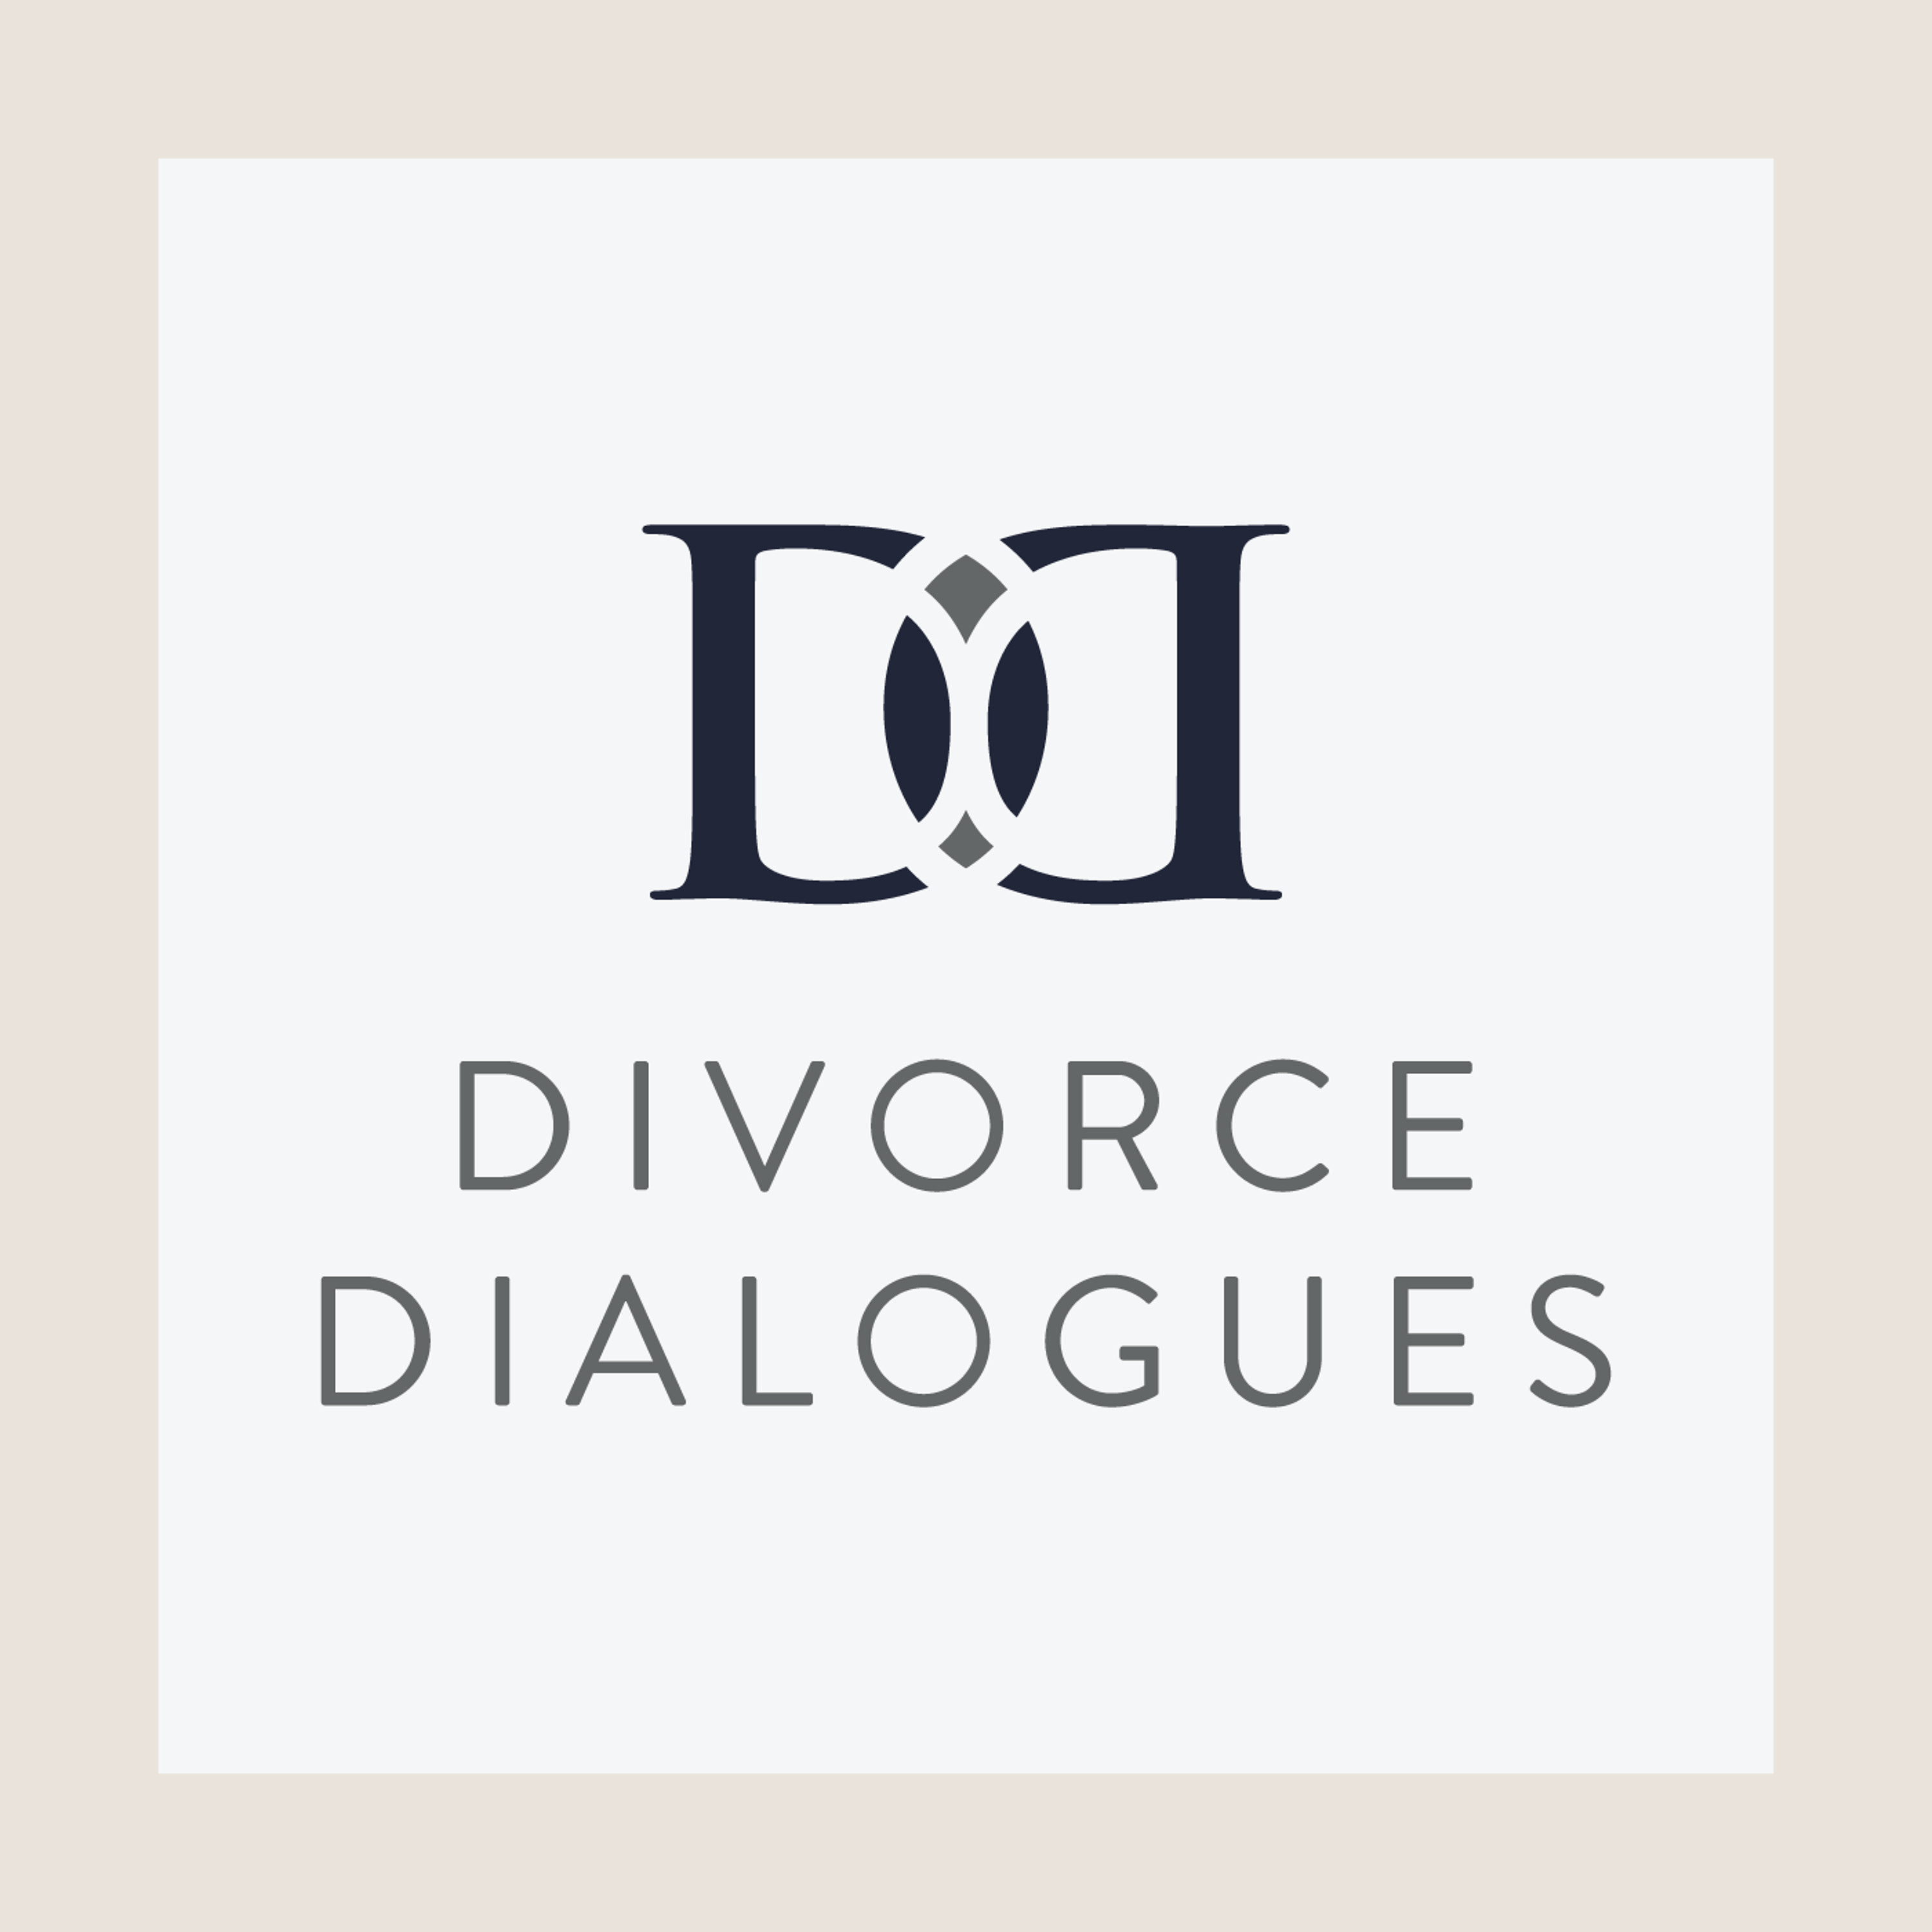 Divorce Dialogues - Co-Parenting to Protect Your Children During Divorce with Julie Ross